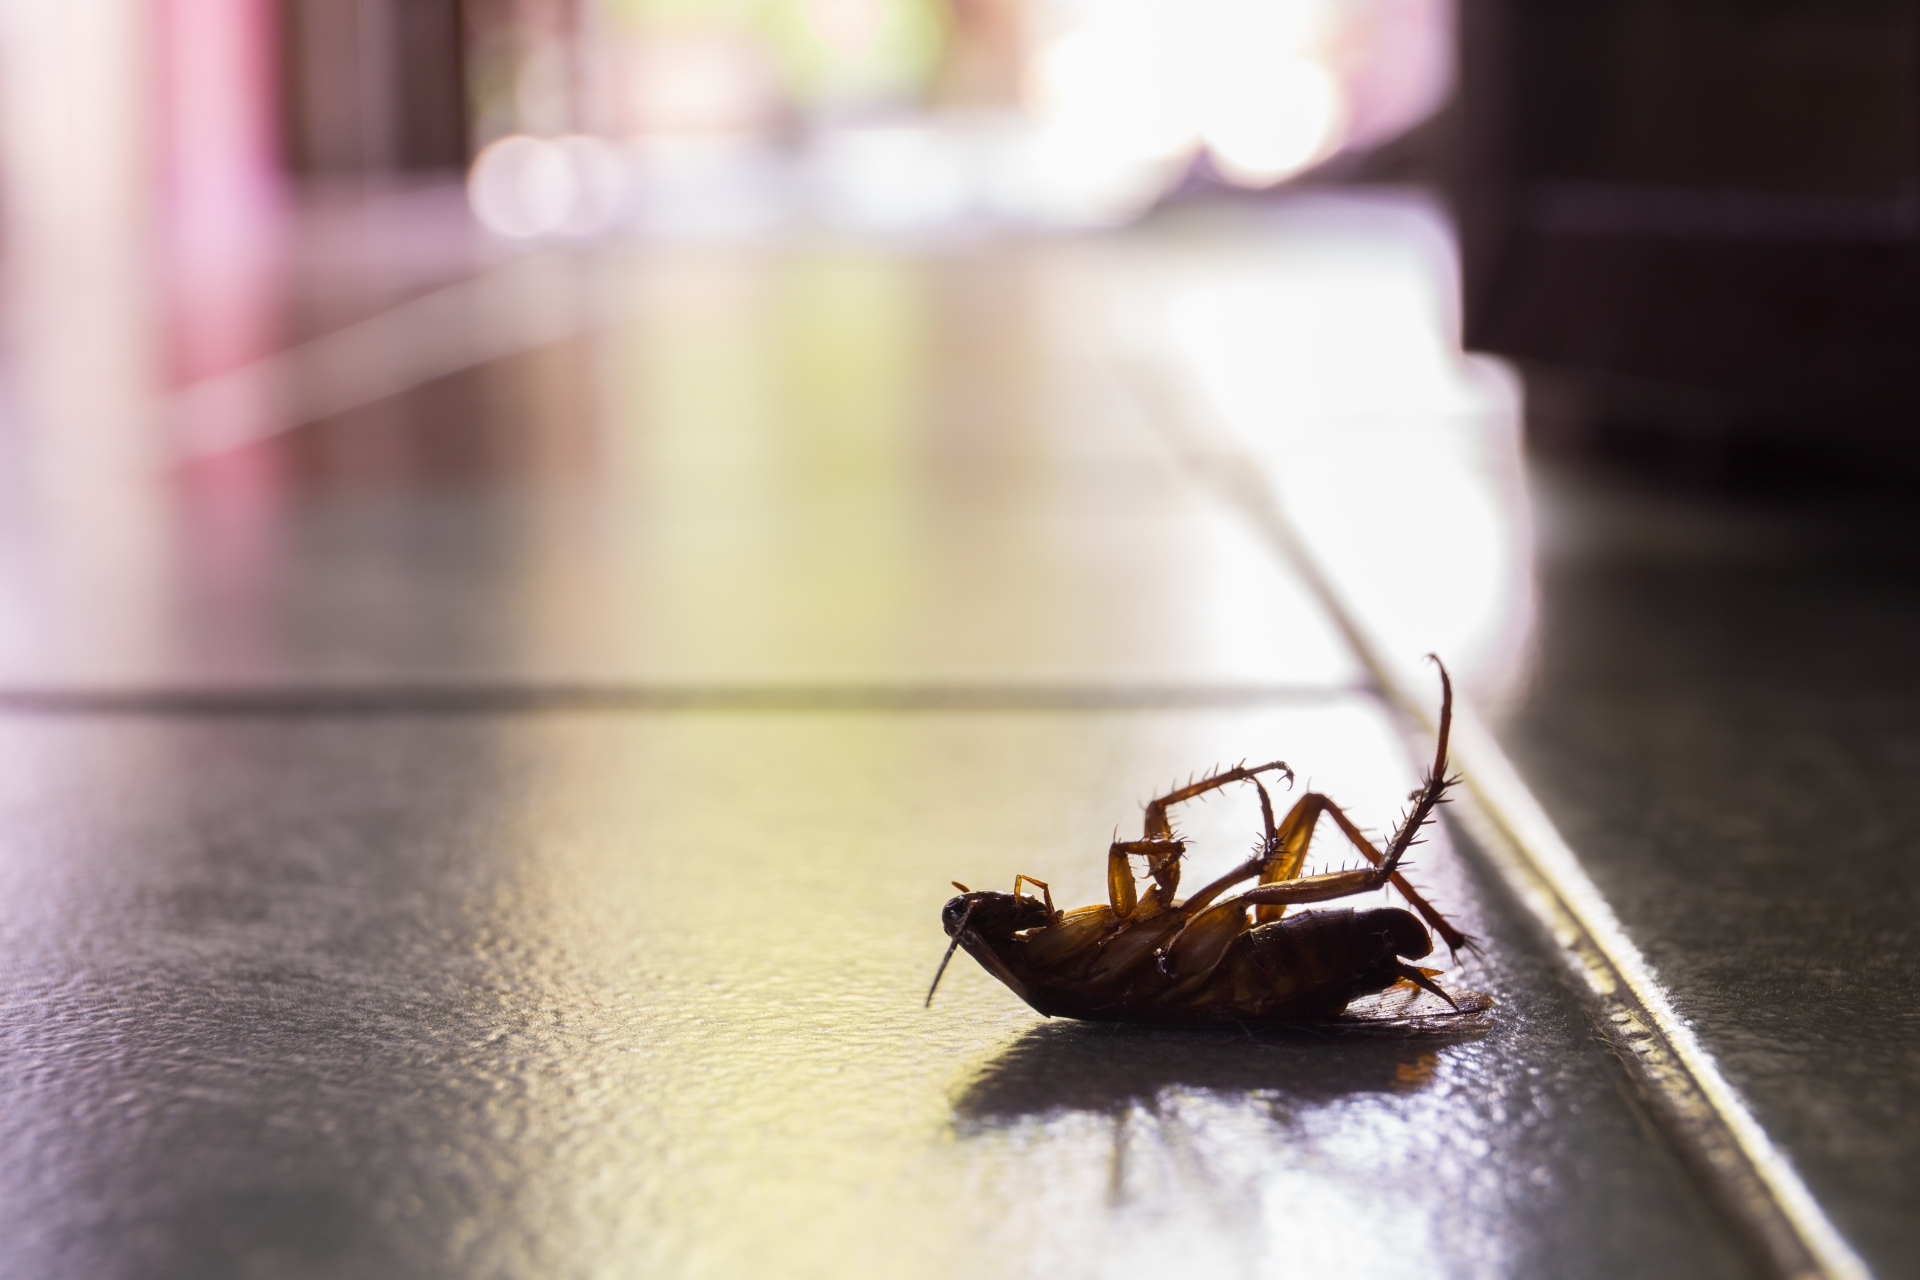 Cockroach Control, Pest Control in Carshalton, Carshalton Beeches, SM5. Call Now 020 8166 9746